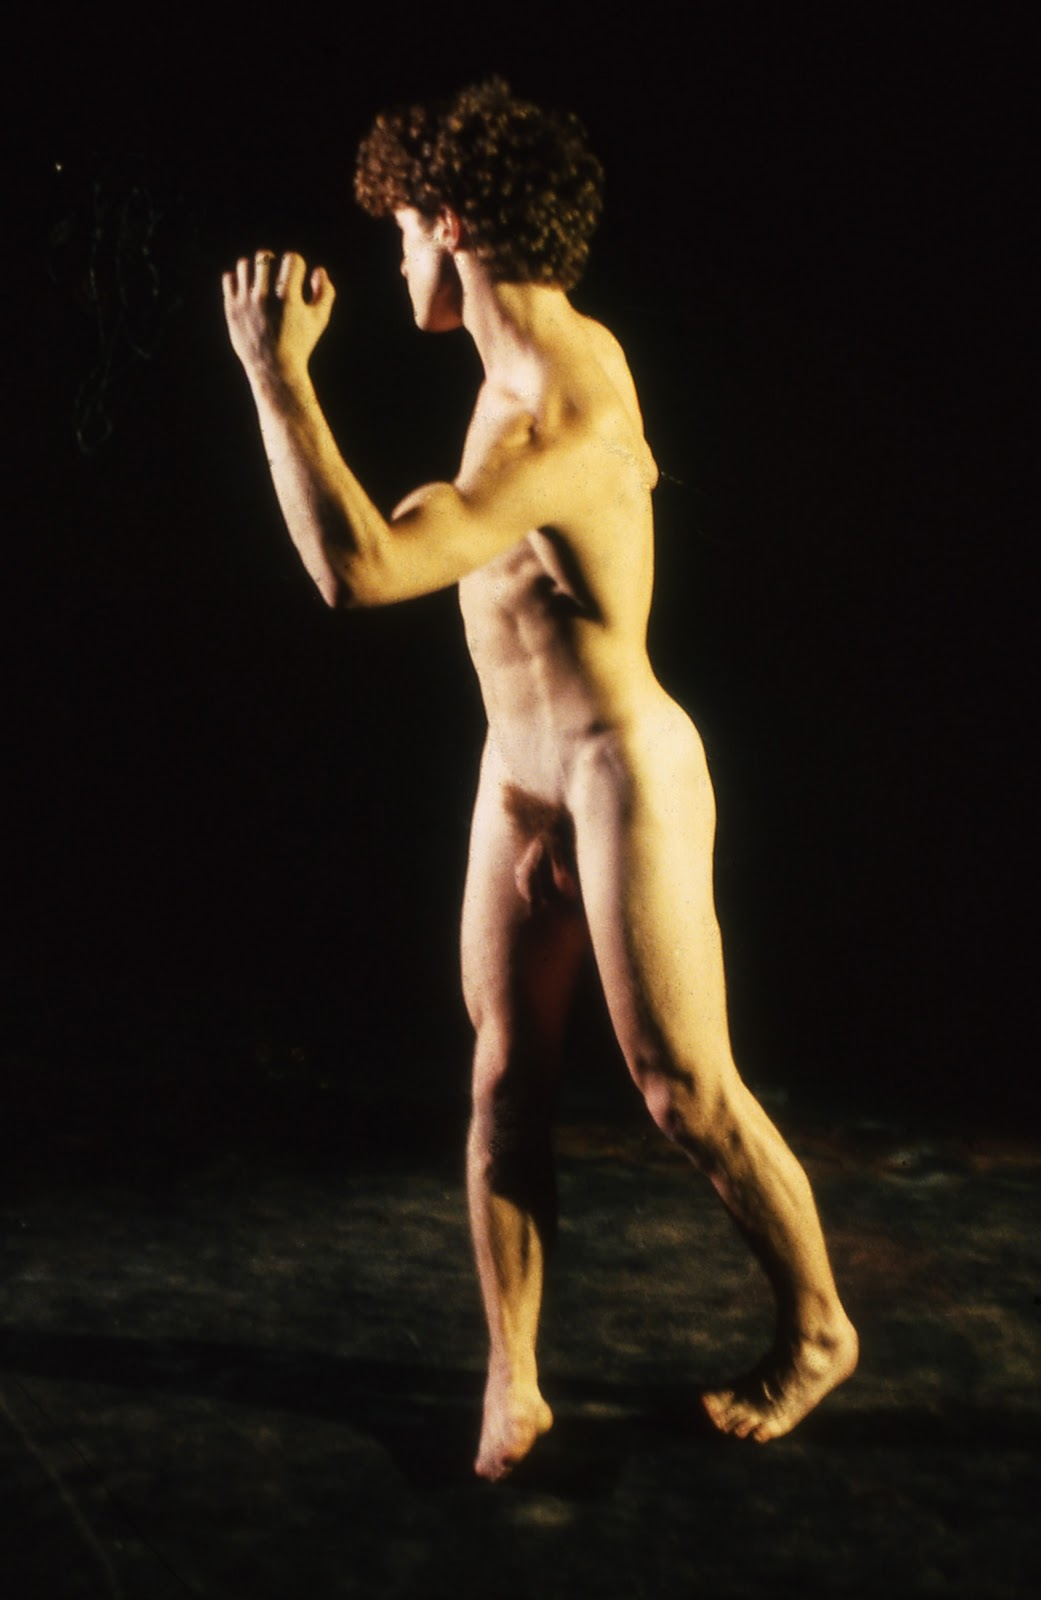 Daniel Equus Naked Photo Radcliffe-Photos Et Galeries-8797